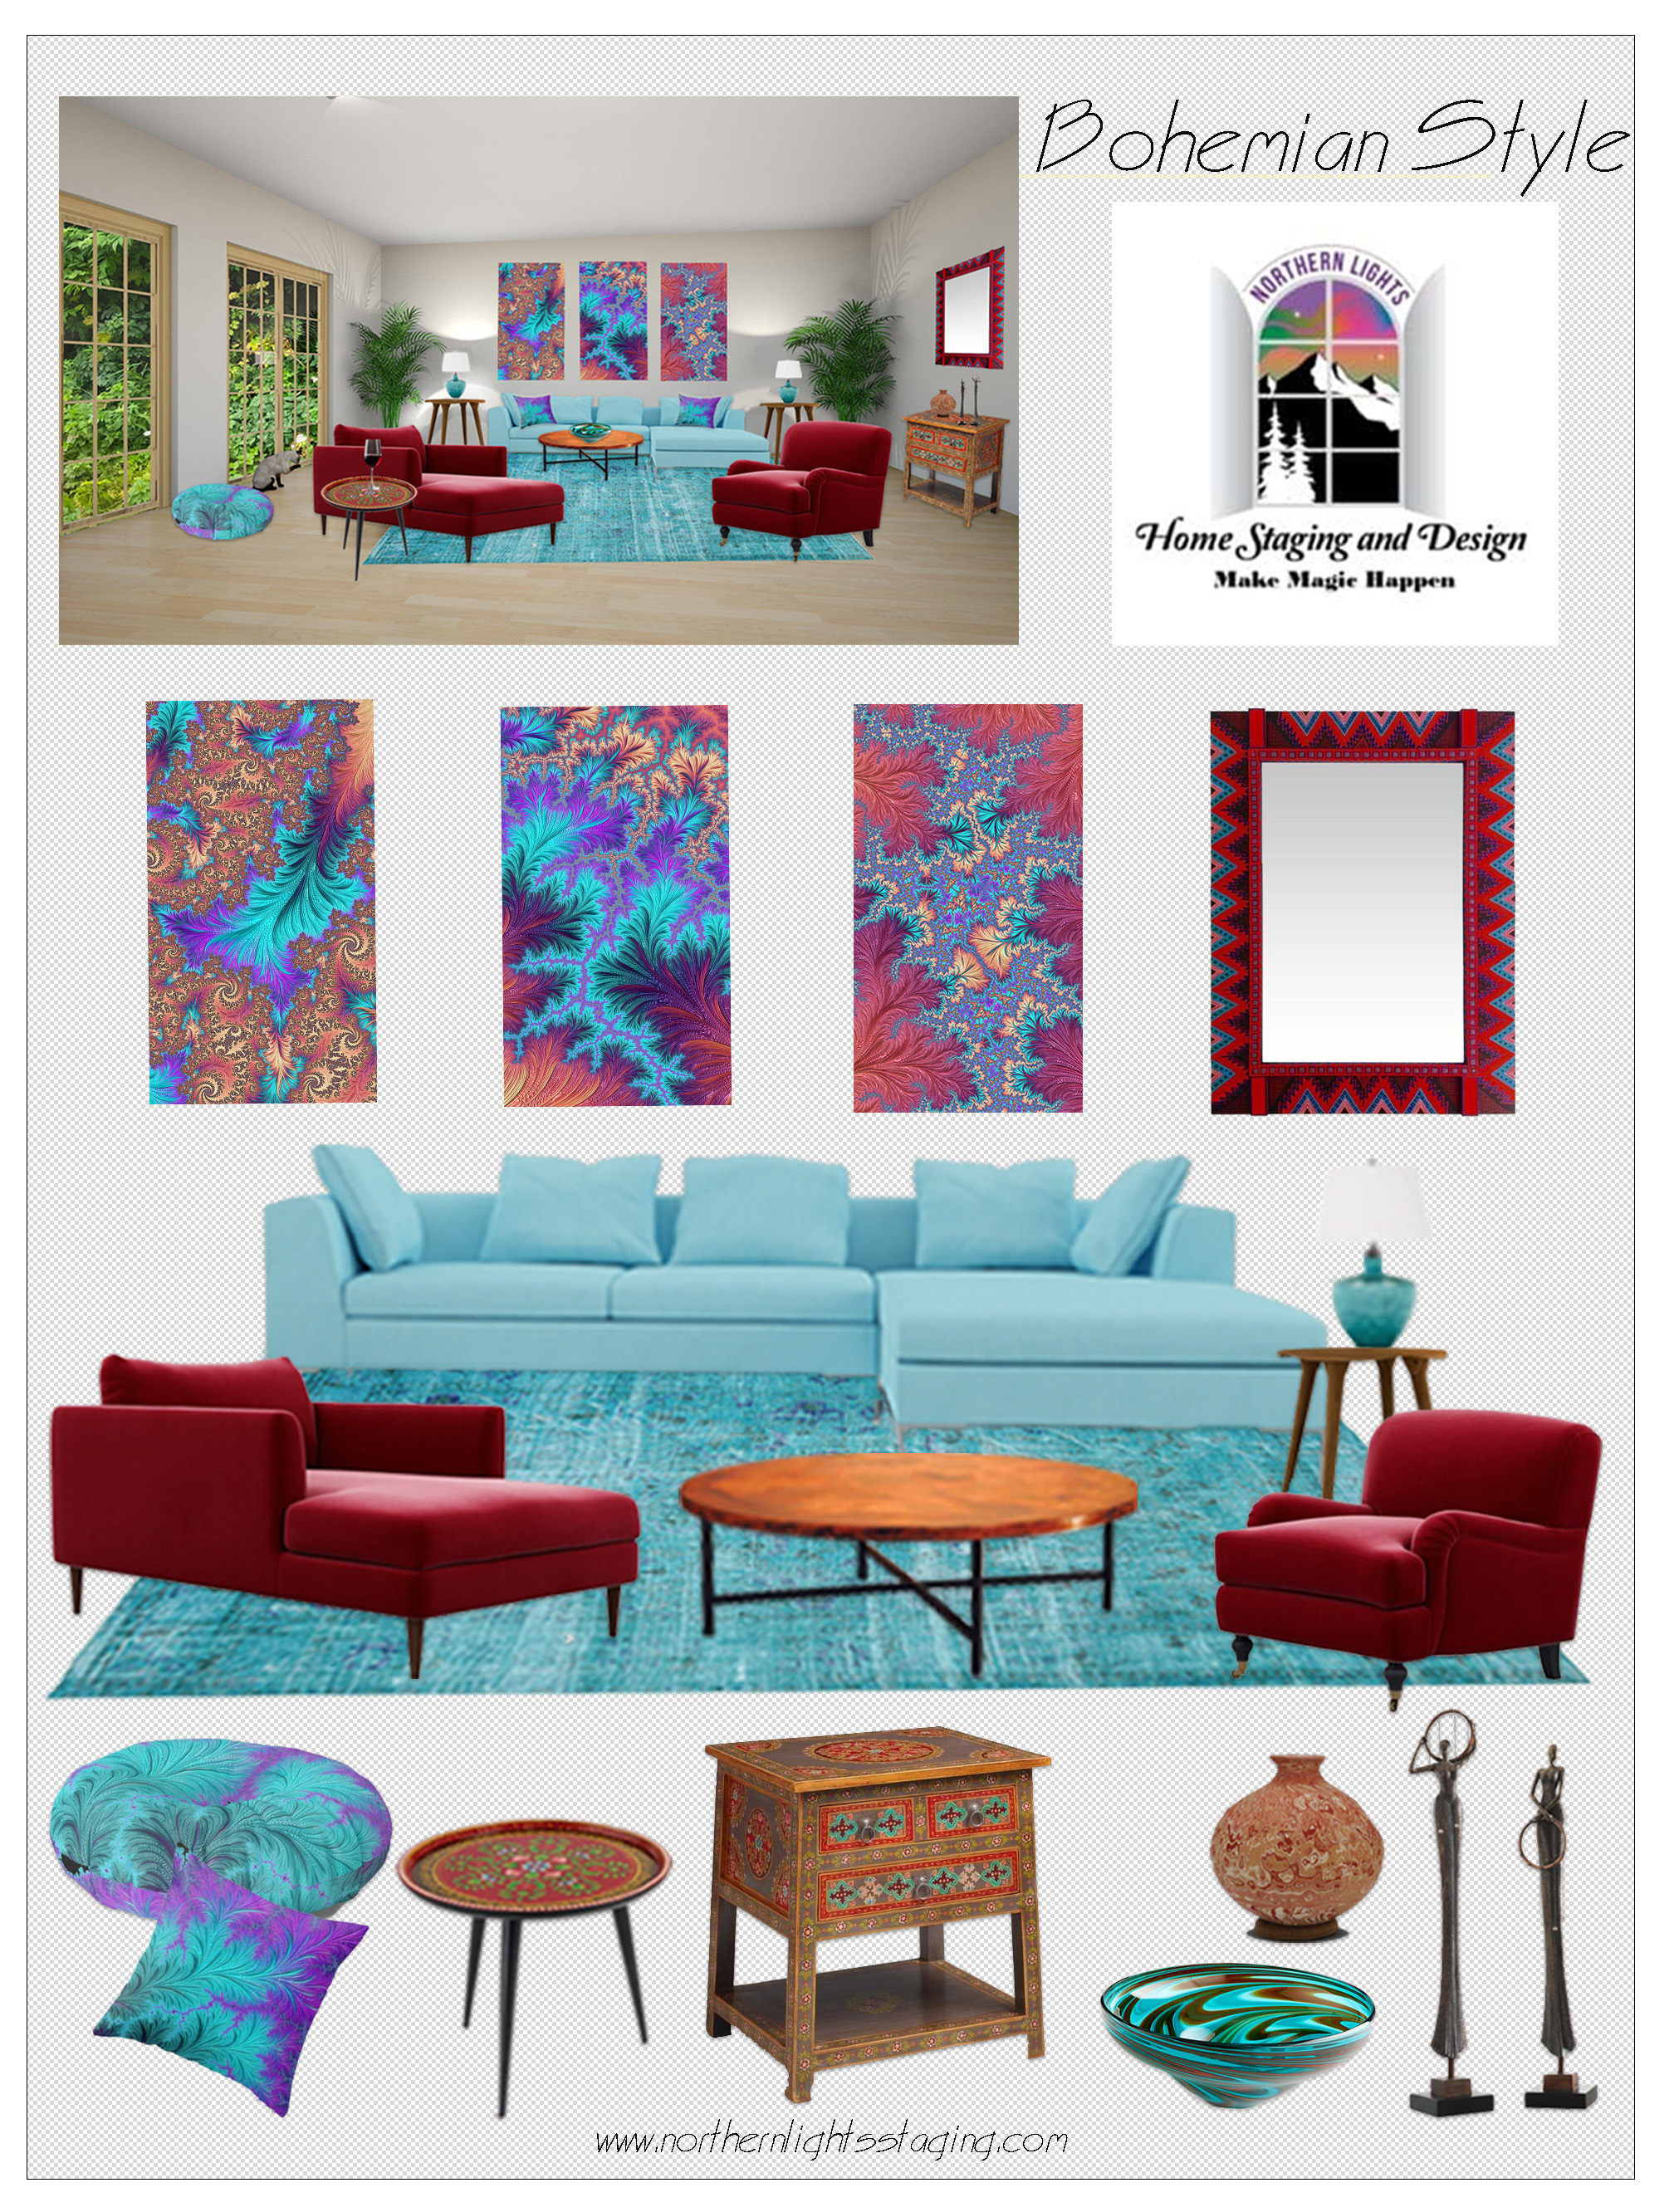 Concept Board of design elements for a Bohemian Style using one of a kind Fractal Art and Decor items by Northern Lights Home Staging and Design and eco-friendly furniture and design elements from India and Mexico.